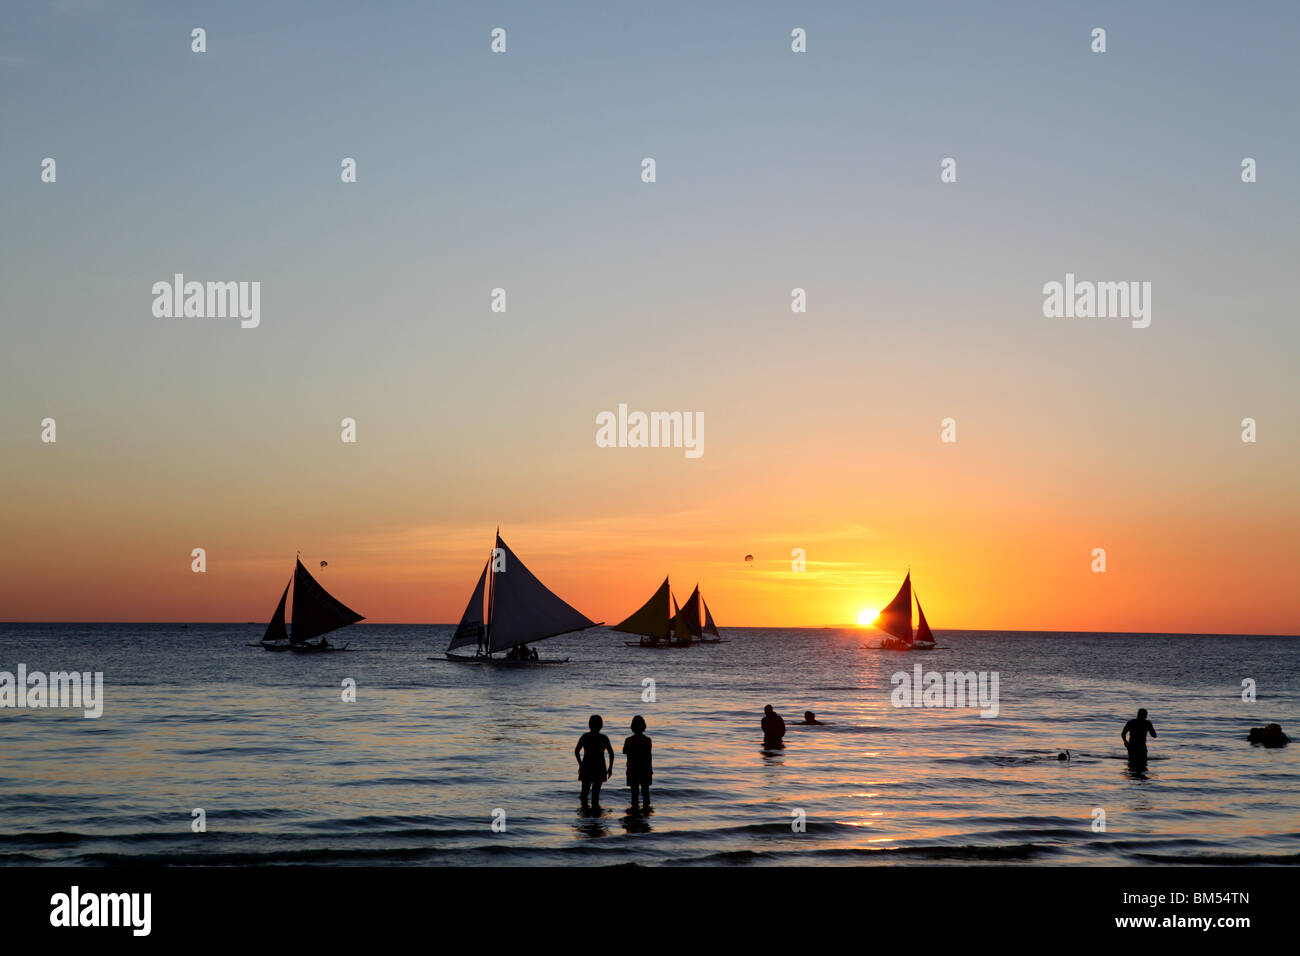 Sail boats ply the shore line at sunset on White Beach, Boracay, the most famous tourist destination in the Philippines. - Stock Image